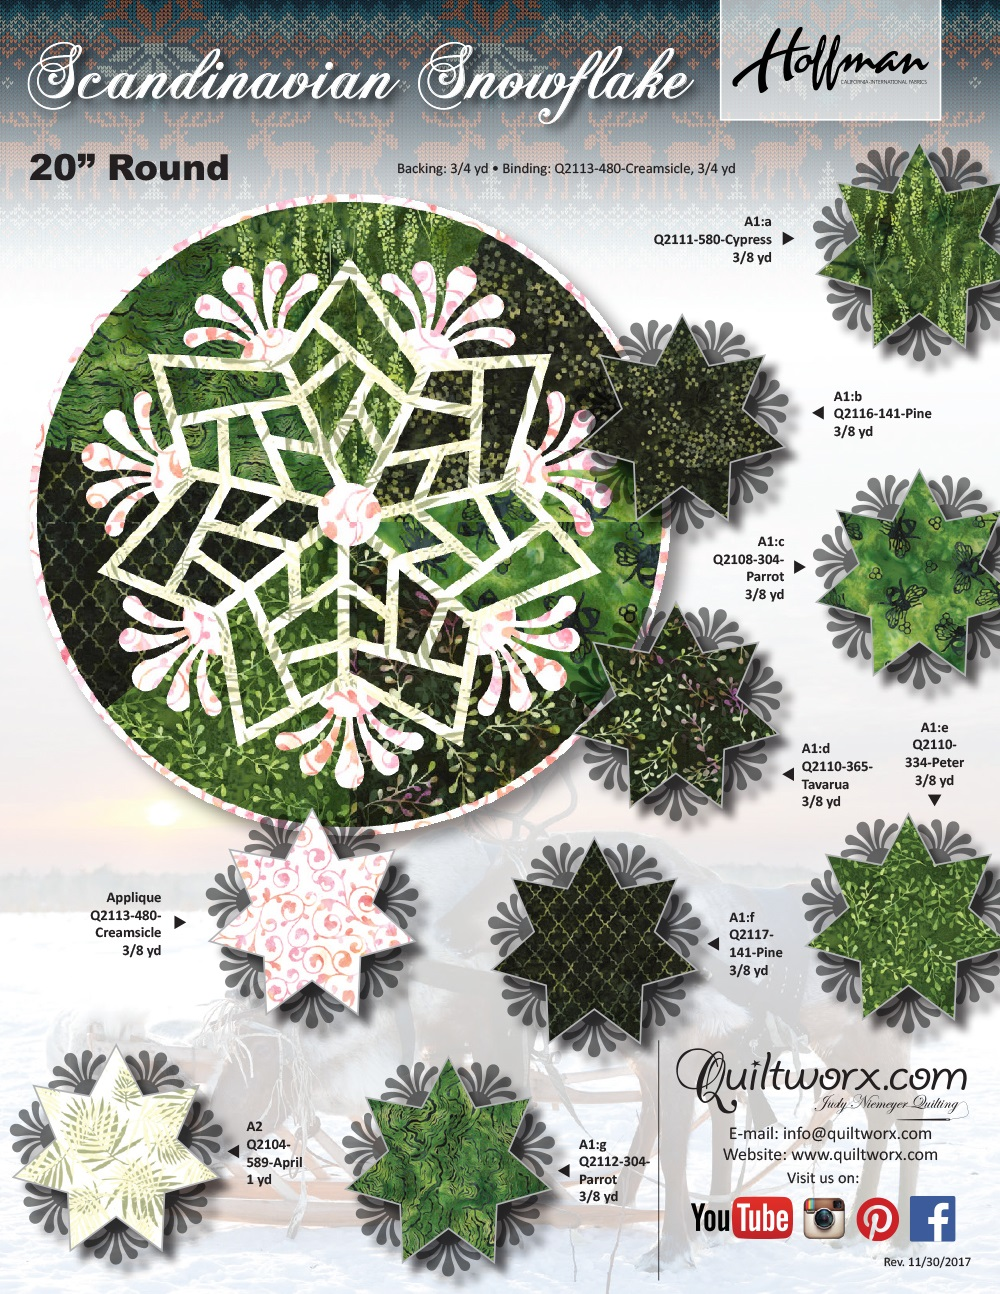 Scandinavian-Snowflake-(Green)-Hoffman-KS-1 - Copy